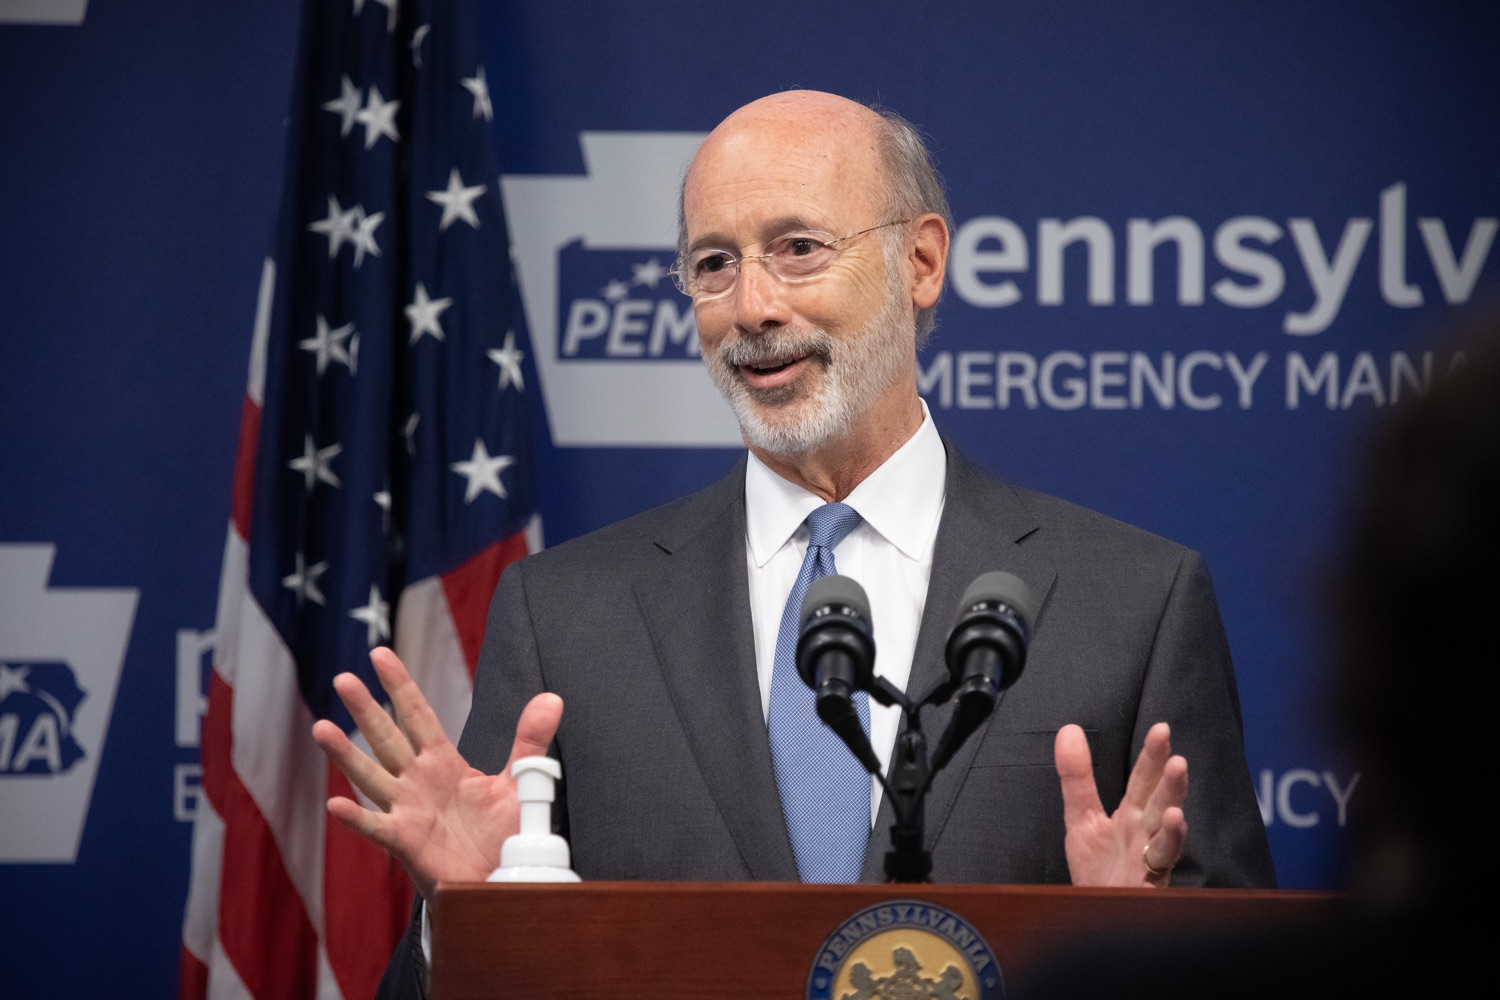 "<a href=""https://filesource.wostreaming.net/commonwealthofpa/photo/18088_gov_covid_update_dz_0007.jpg"" target=""_blank"">⇣ Download Photo<br></a>Governor Tom Wolf answers questions from the press. Governor Tom Wolf announced that people with intellectual disabilities and autism and the providers of support services for these vulnerable Pennsylvanians will receive $260 million in CARES Act funding to help continue to provide services during the COVID-19 pandemic.  Gov. Wolf was joined by Department of Human Services Secretary Teresa Miller, who outlined to details of funding allocations.  JUNE 15, 2020 - HARRISBURG, PA"